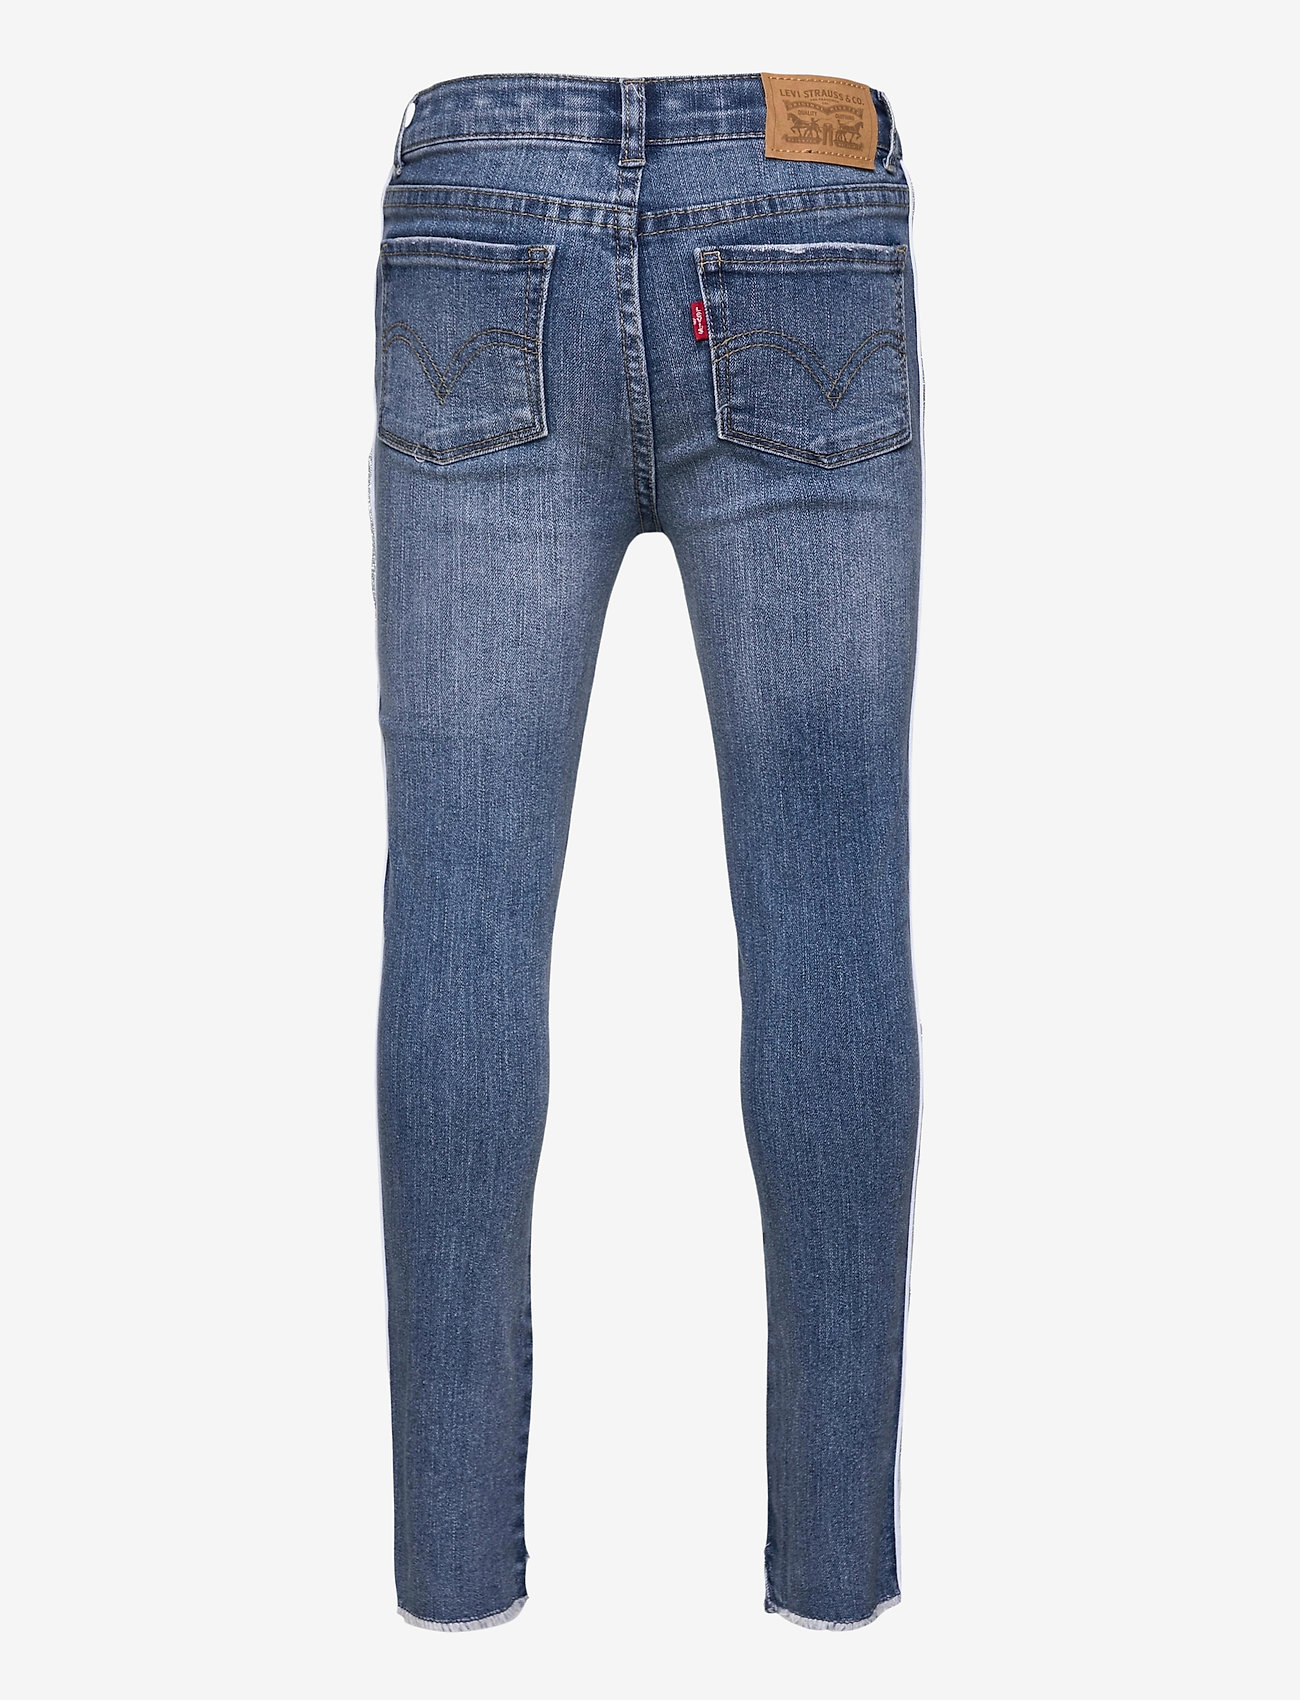 Levi's - 710 SKINNY ANKLE JEAN - jeans - no diggity - 1